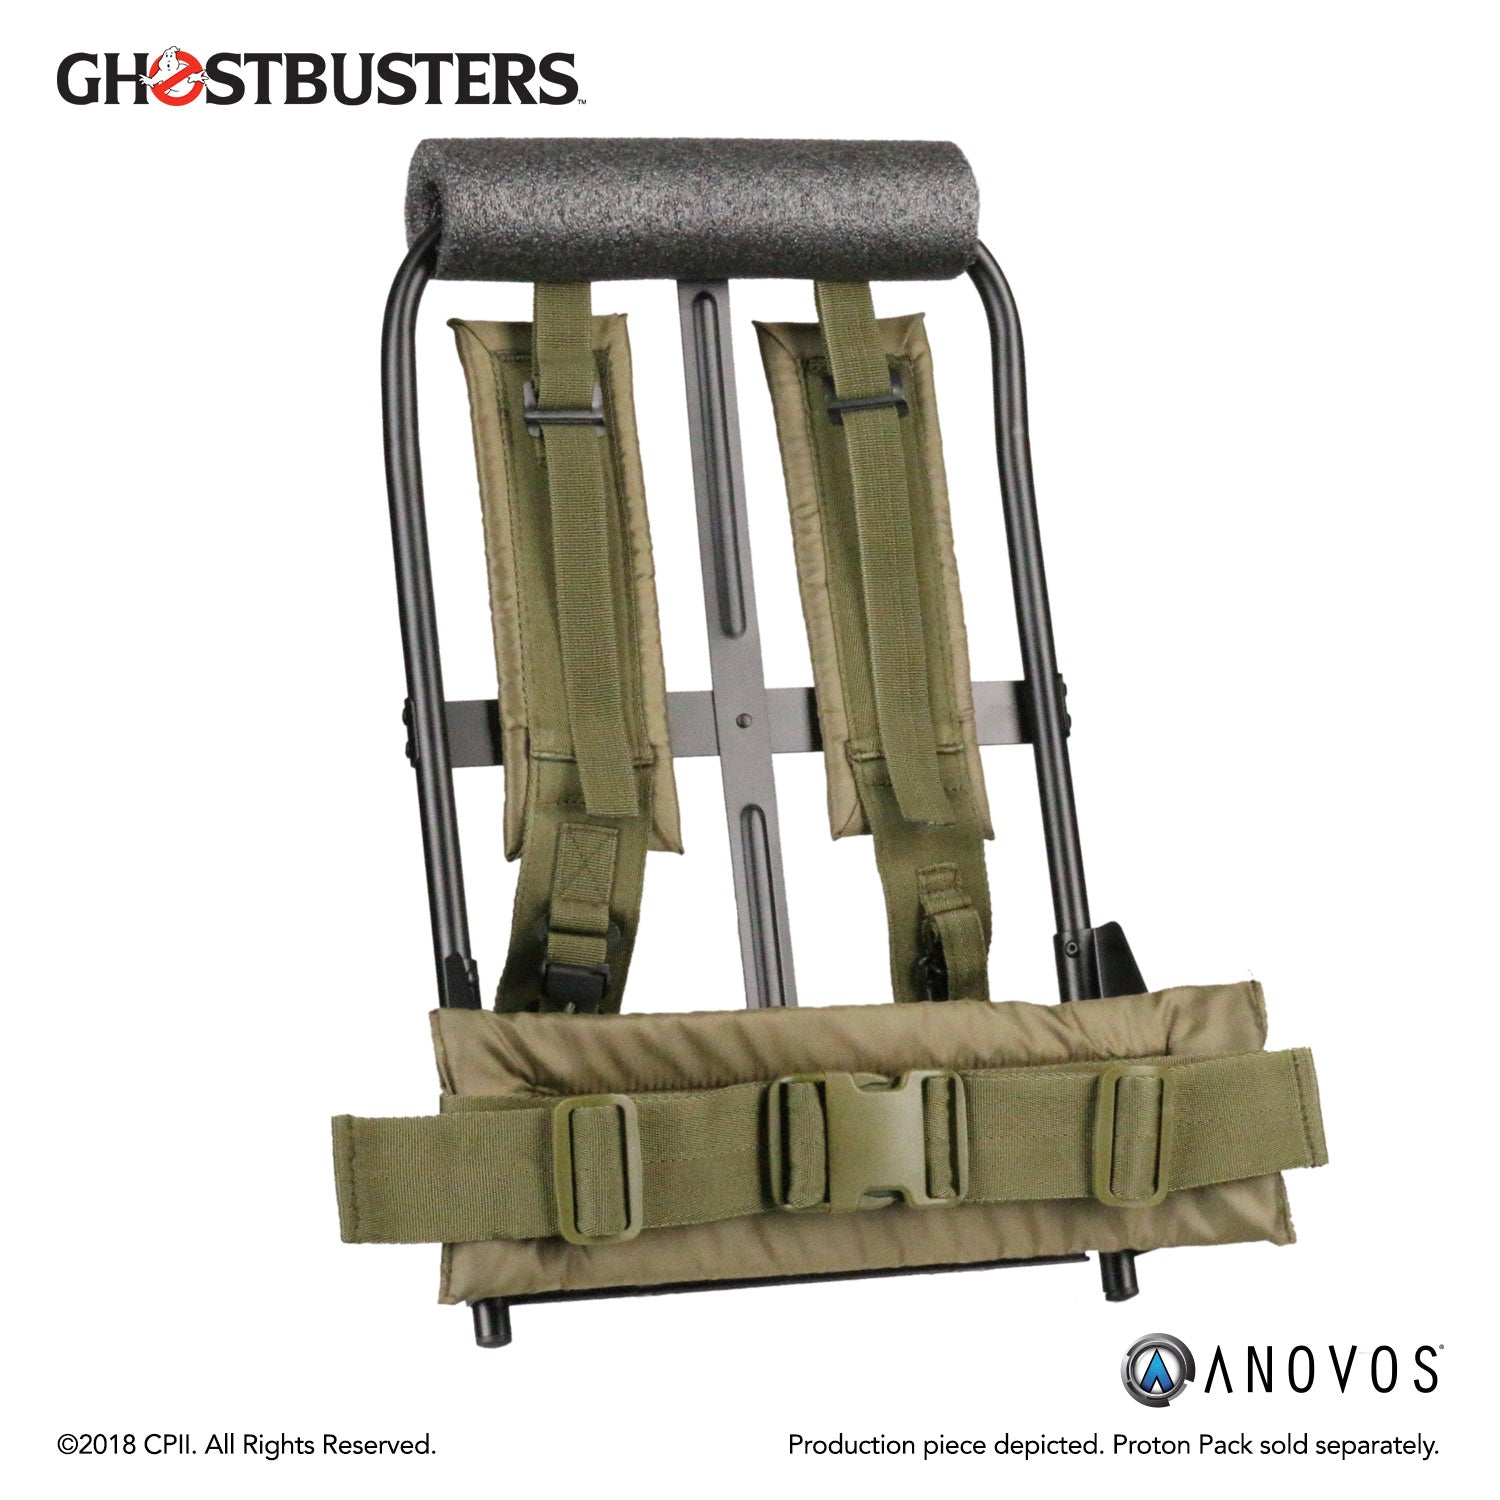 GHOSTBUSTERS™: Proton Pack Frame | ANOVOS Productions LLC